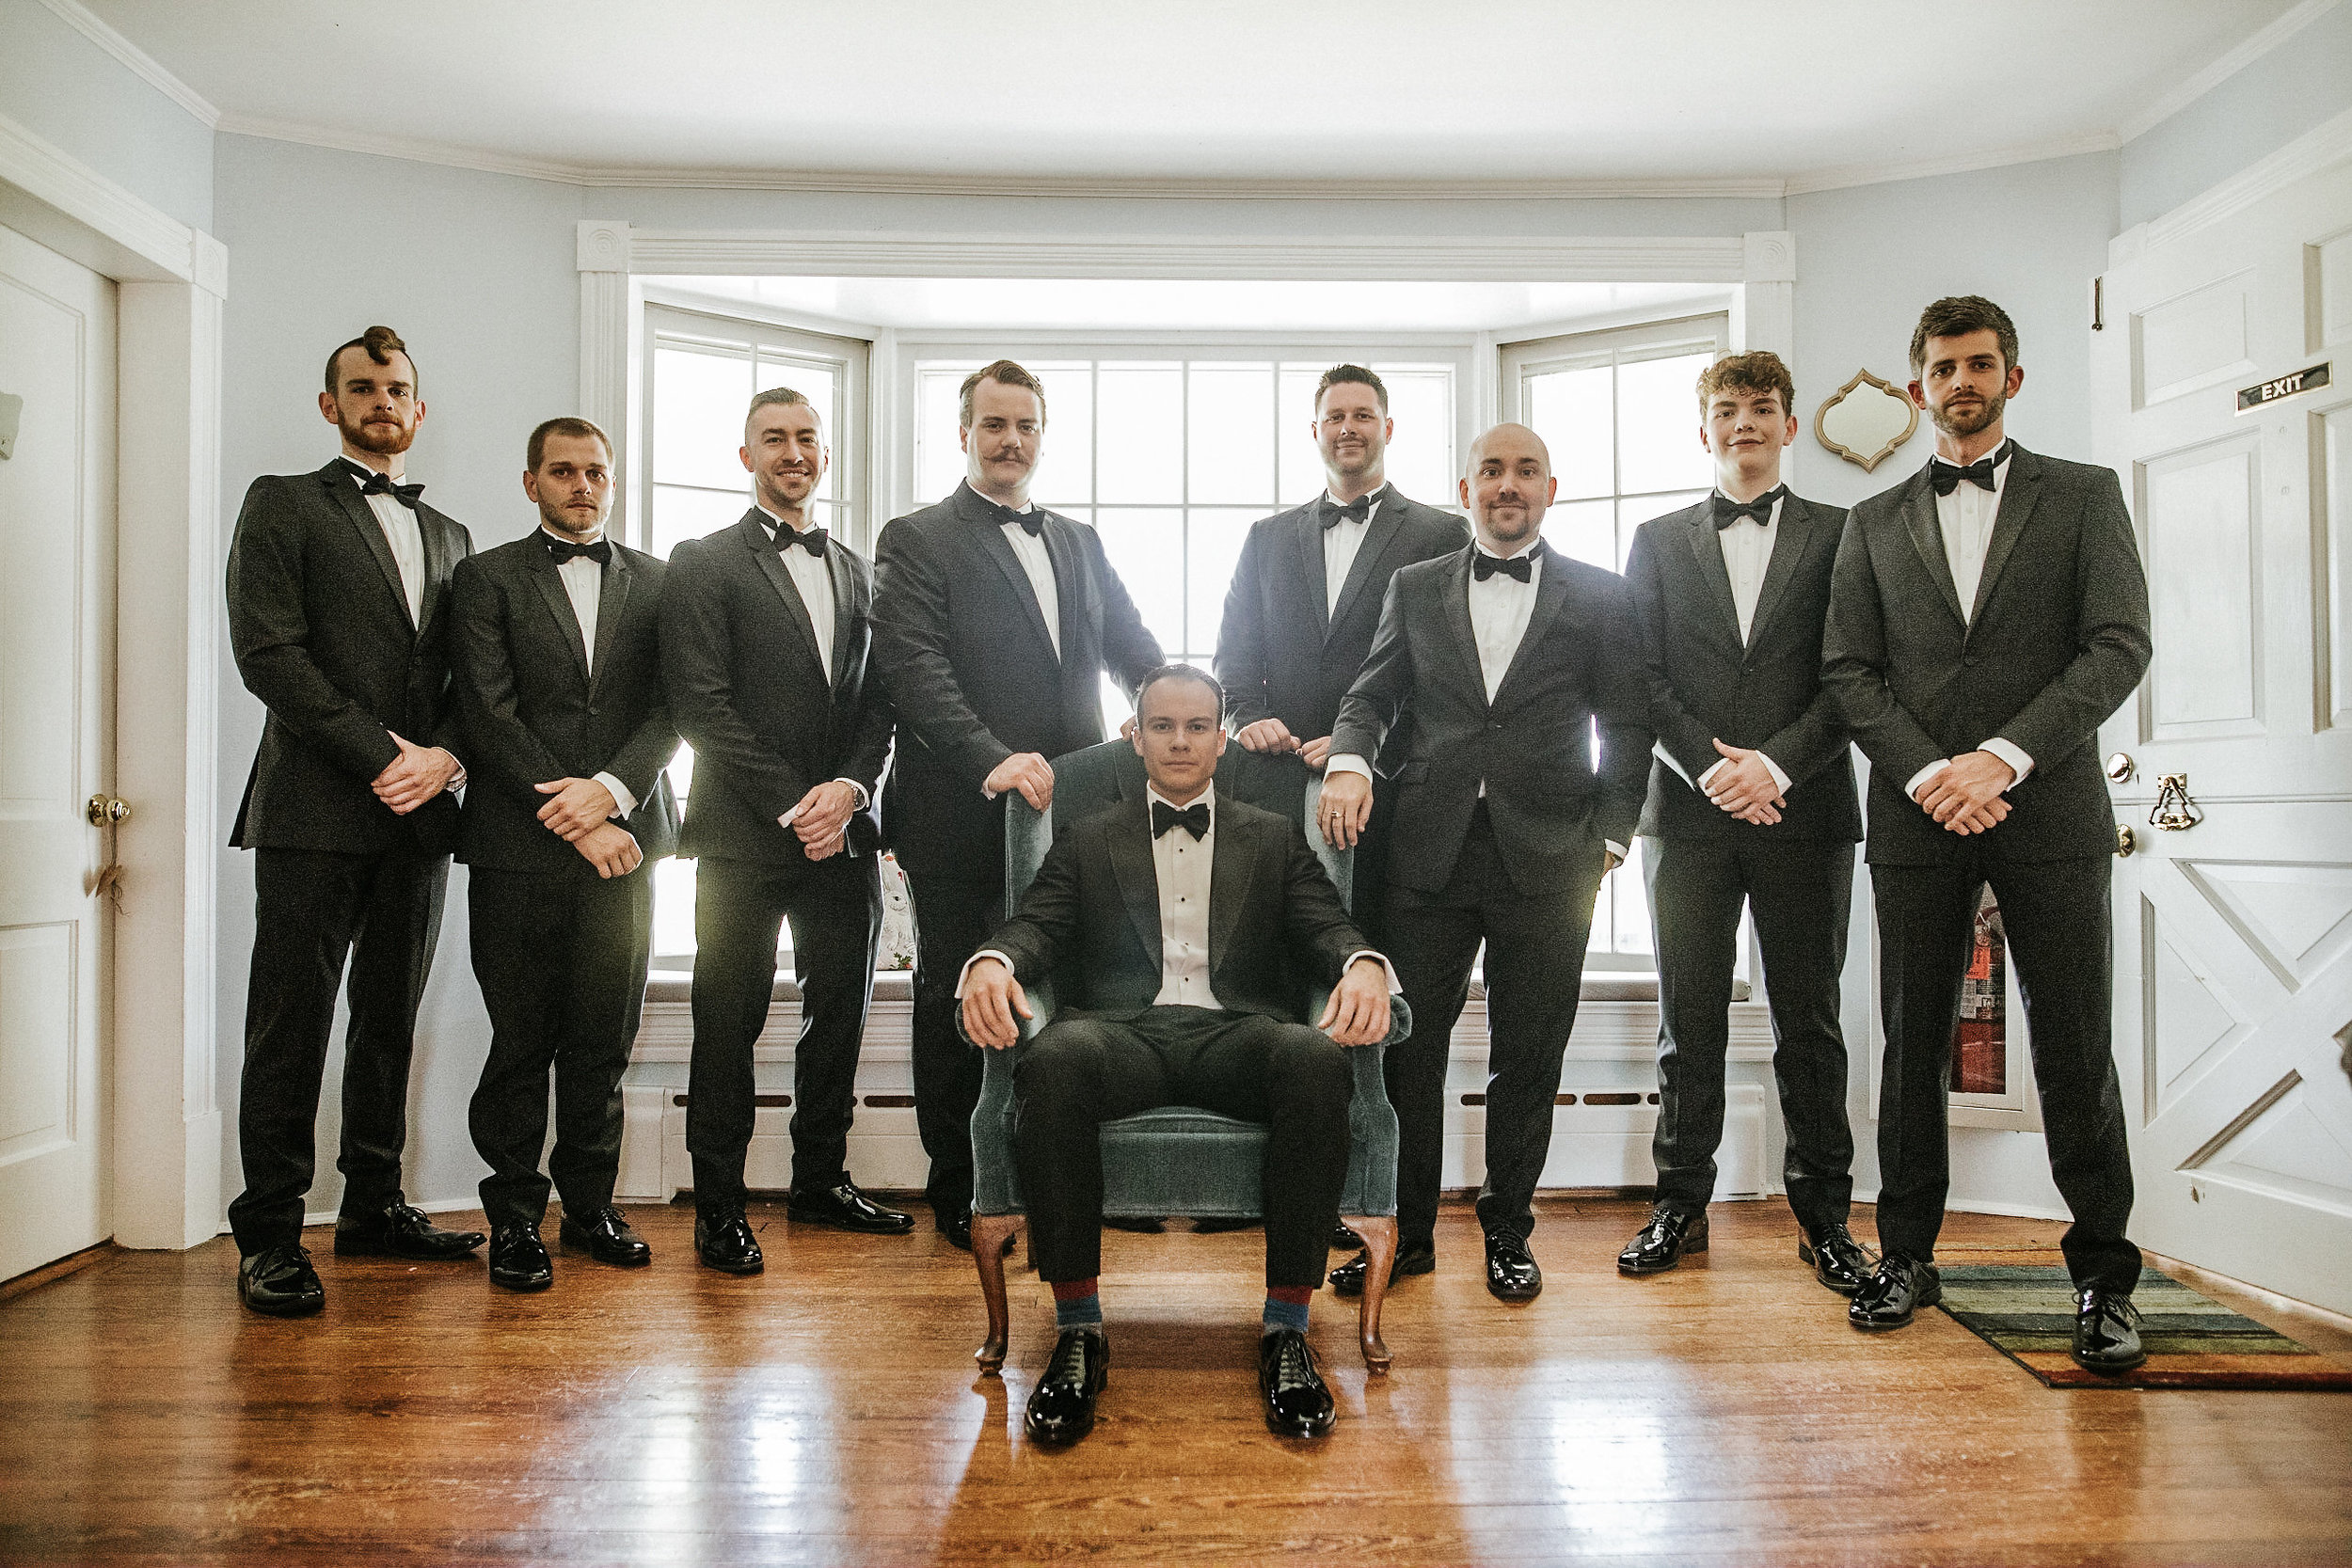 Groom sitting in chair surrounded by groomsmen